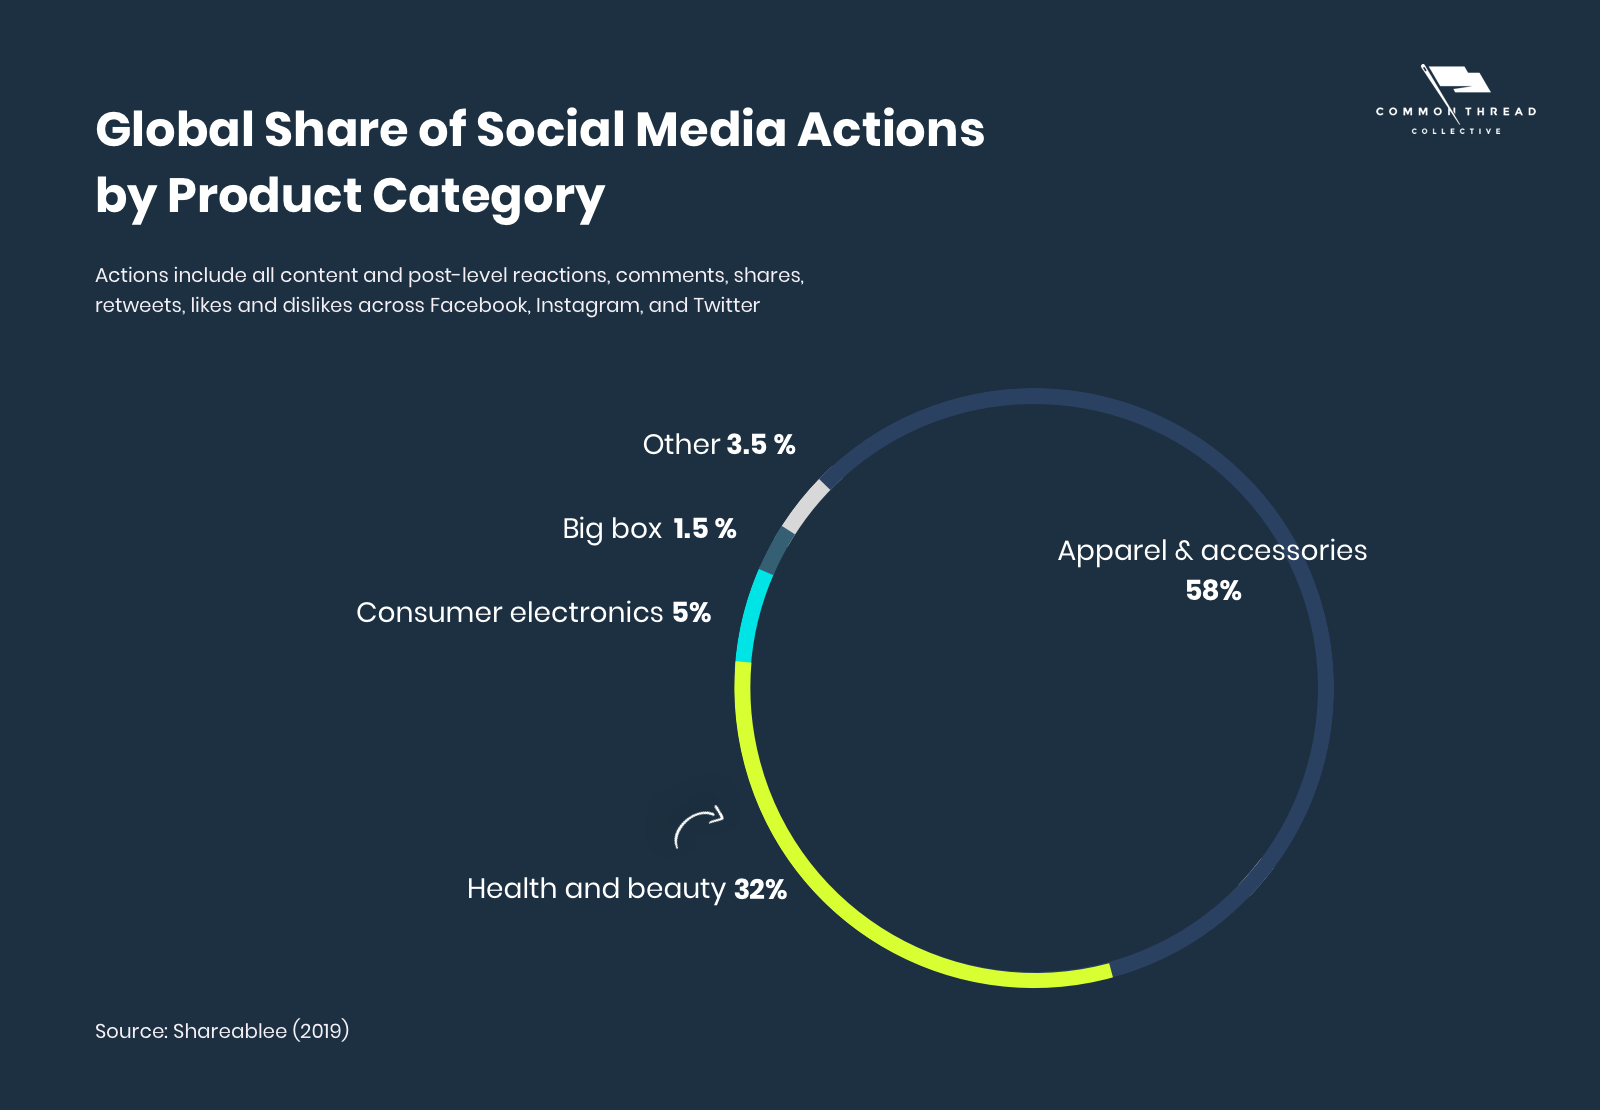 Global Share of Social Media Actions by Product Category